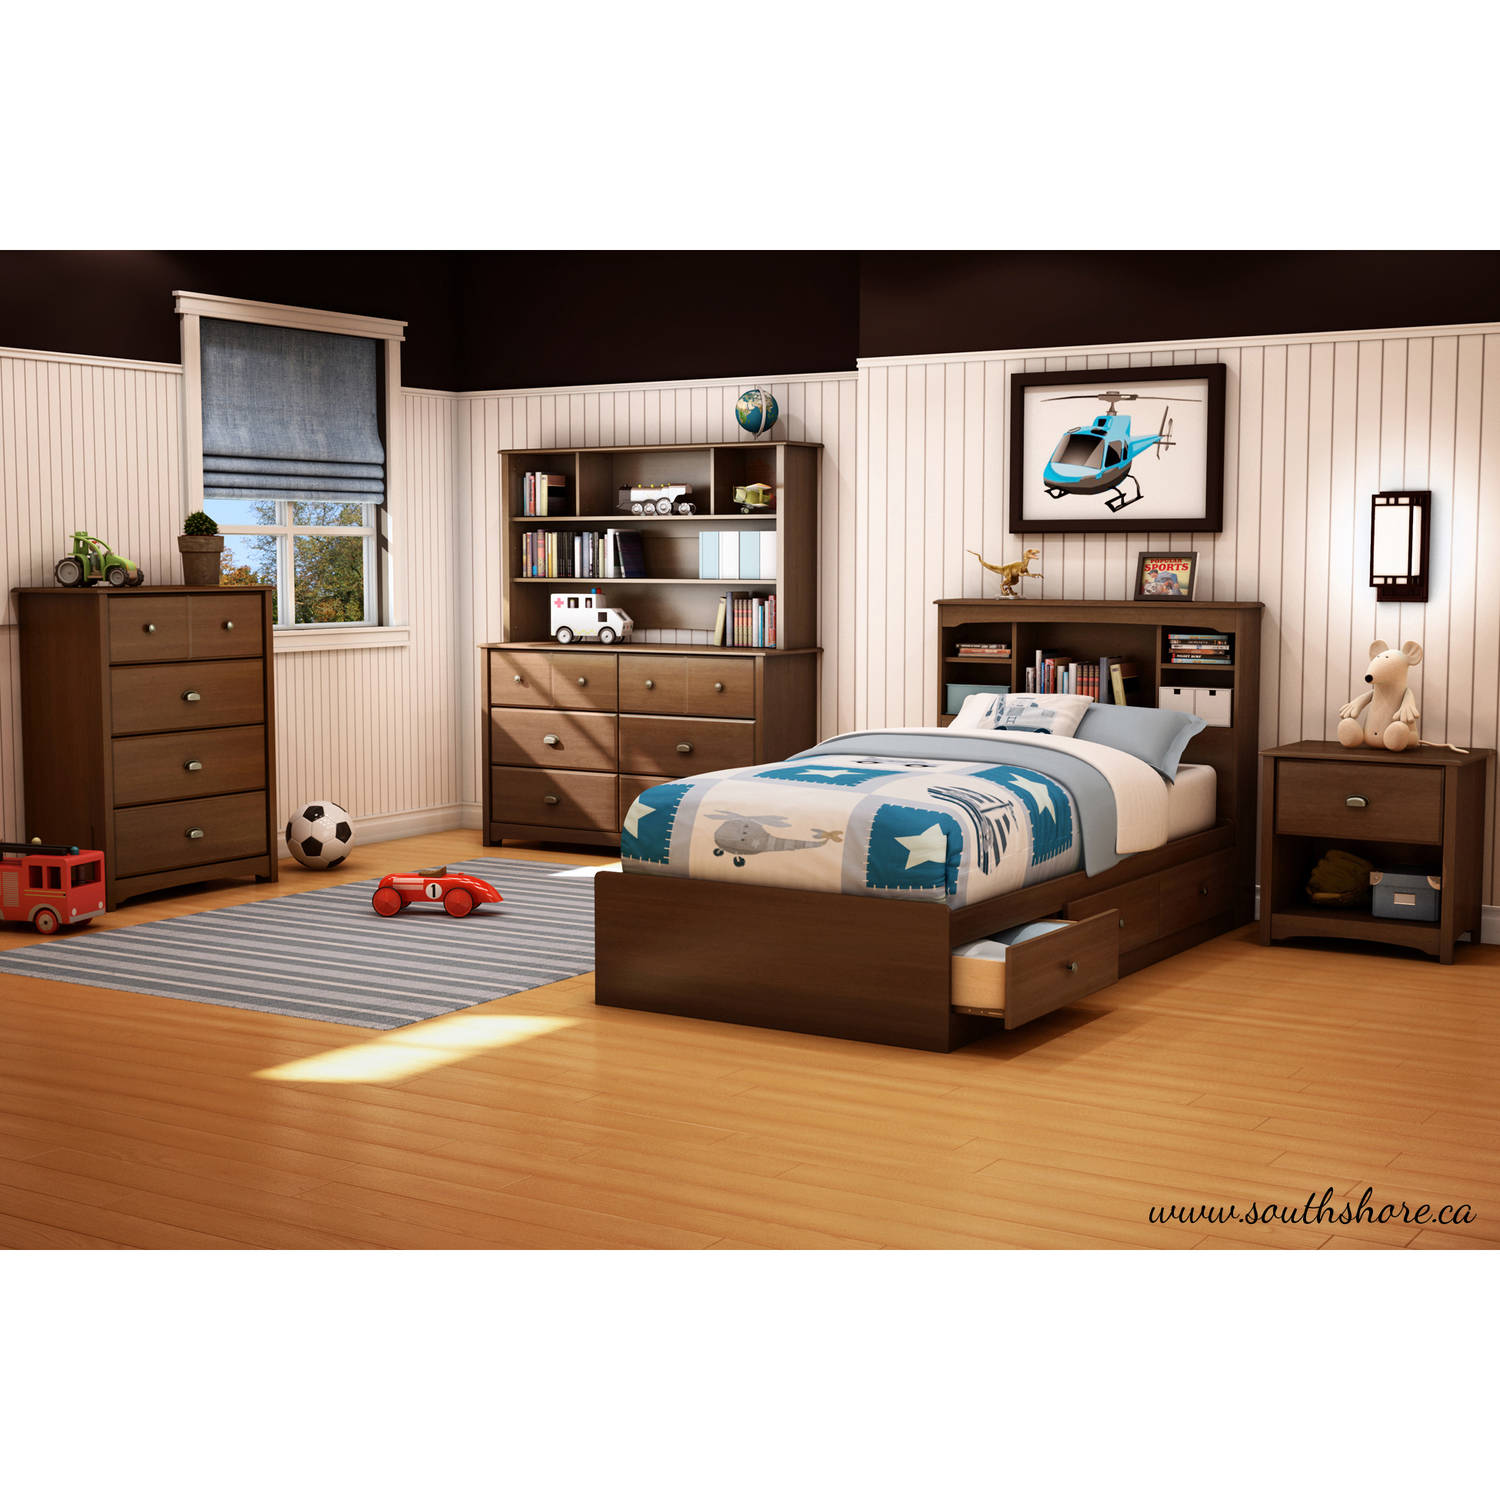 South Shore Bedroom Furniture South Shore Willow Twin 39 Mates Bed With 3 Drawers Multiple